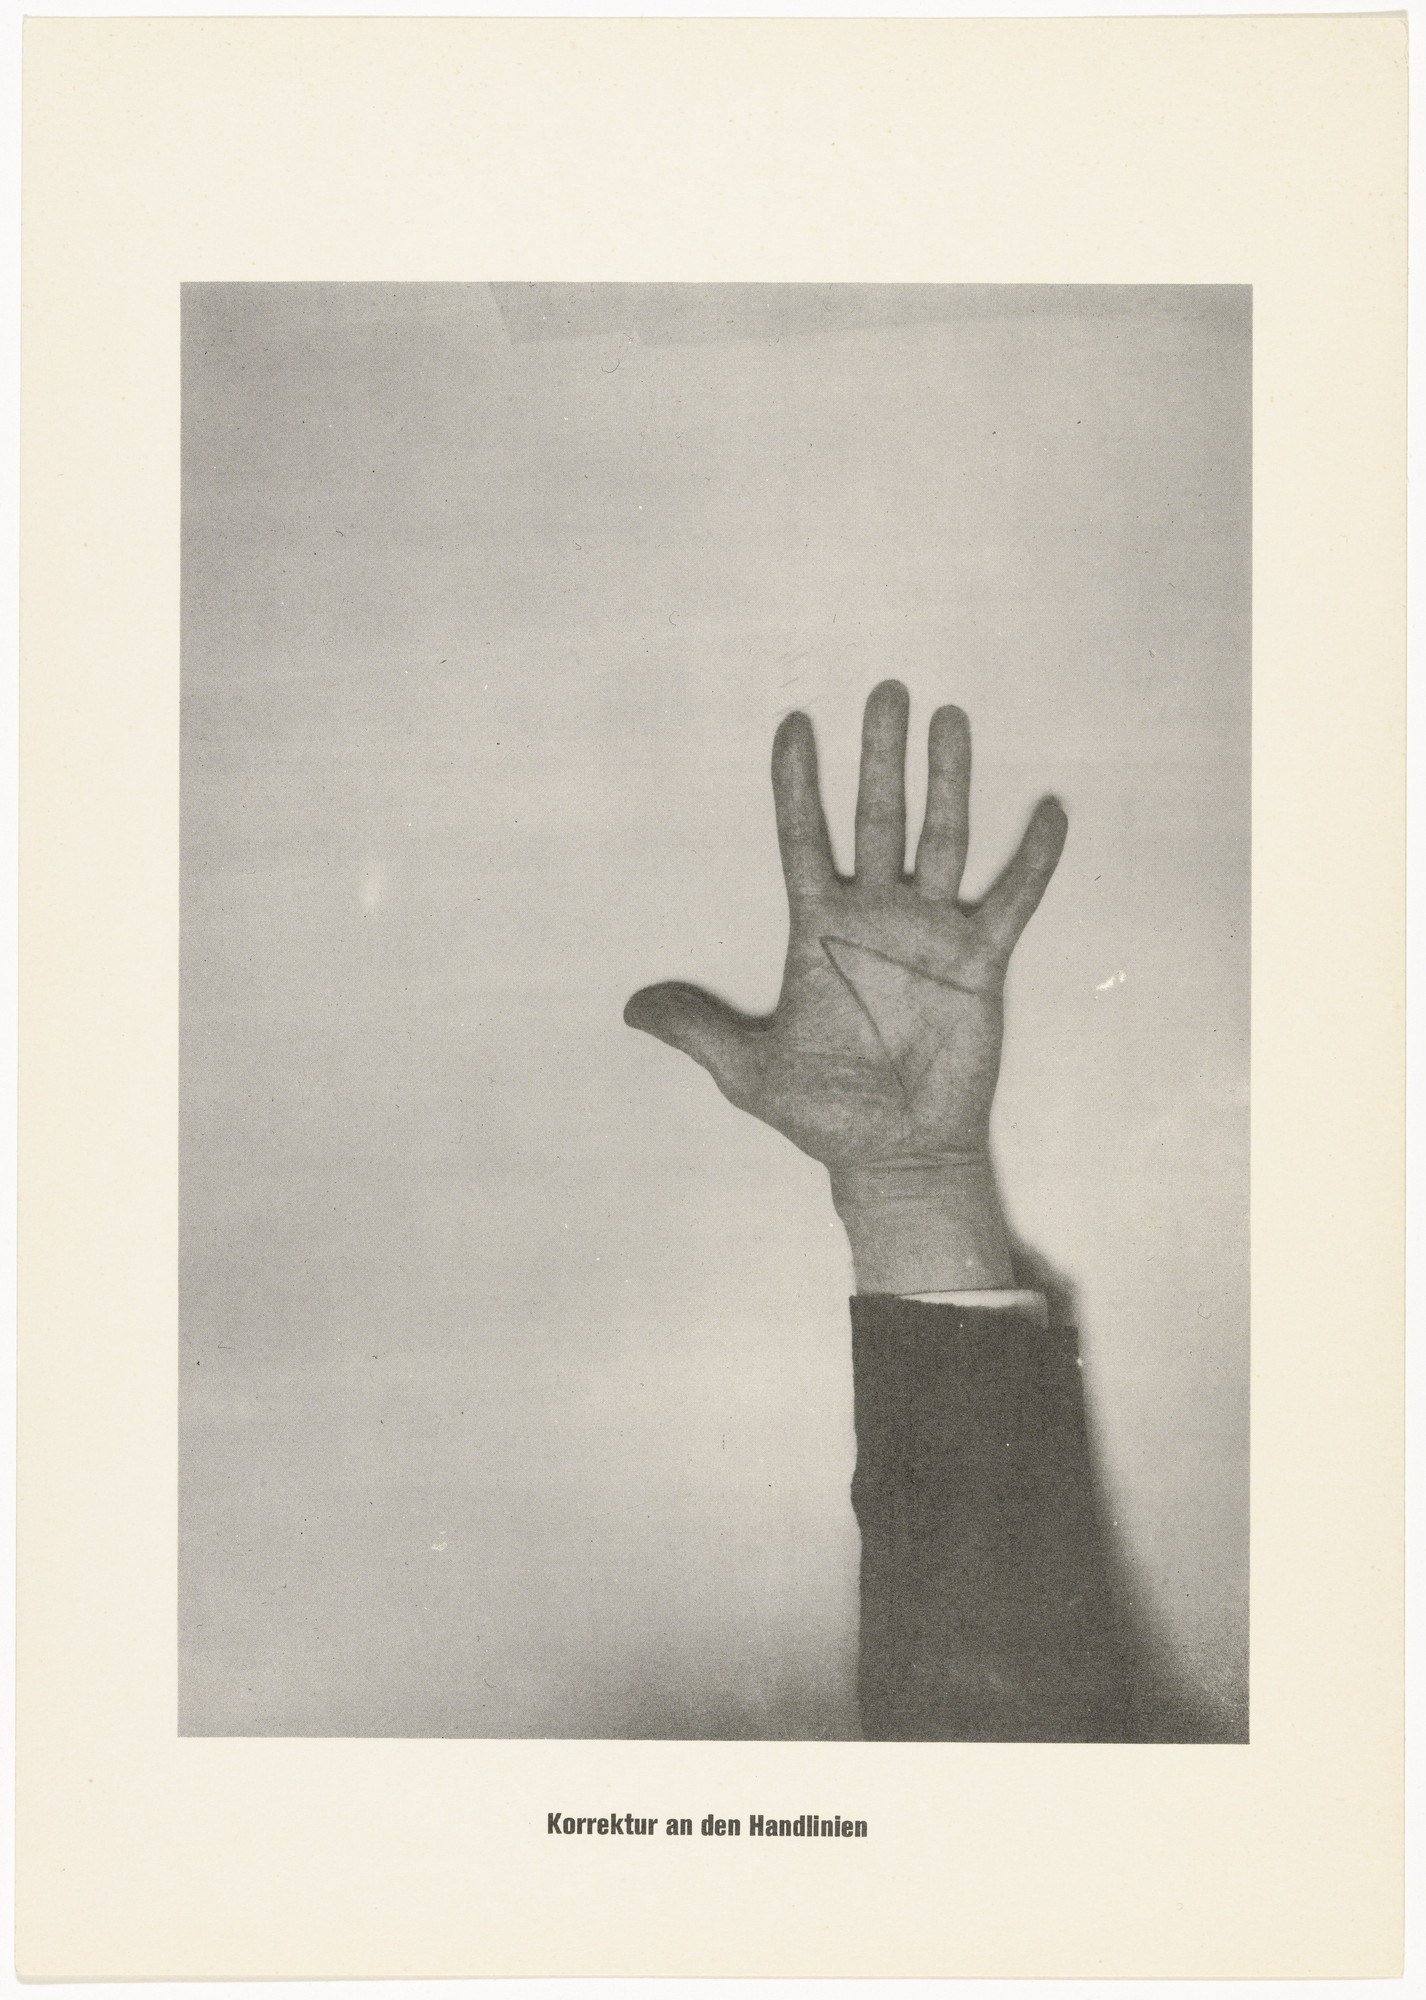 Sigmar Polke, Christof  Kohlhöfer. The Correction of the Lines of the Hand (Die Korrektur an den Handlinien) from .....Higher Beings Ordain (.....Höhere Wesen befehlen). 1968